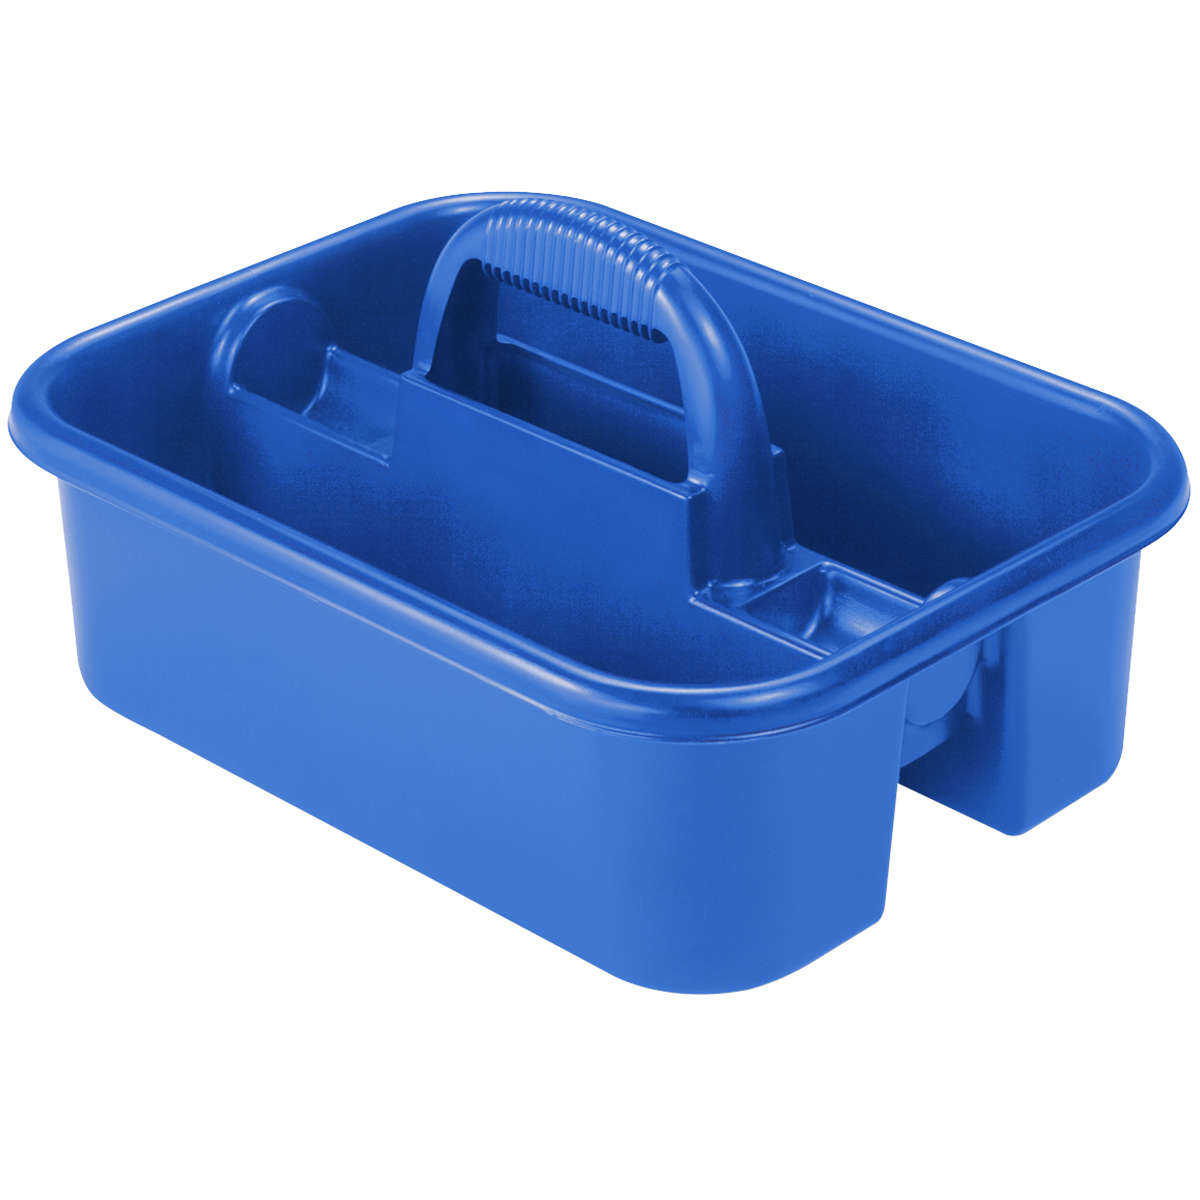 Plastic Storage Containers Akro Bins Wire Shelving